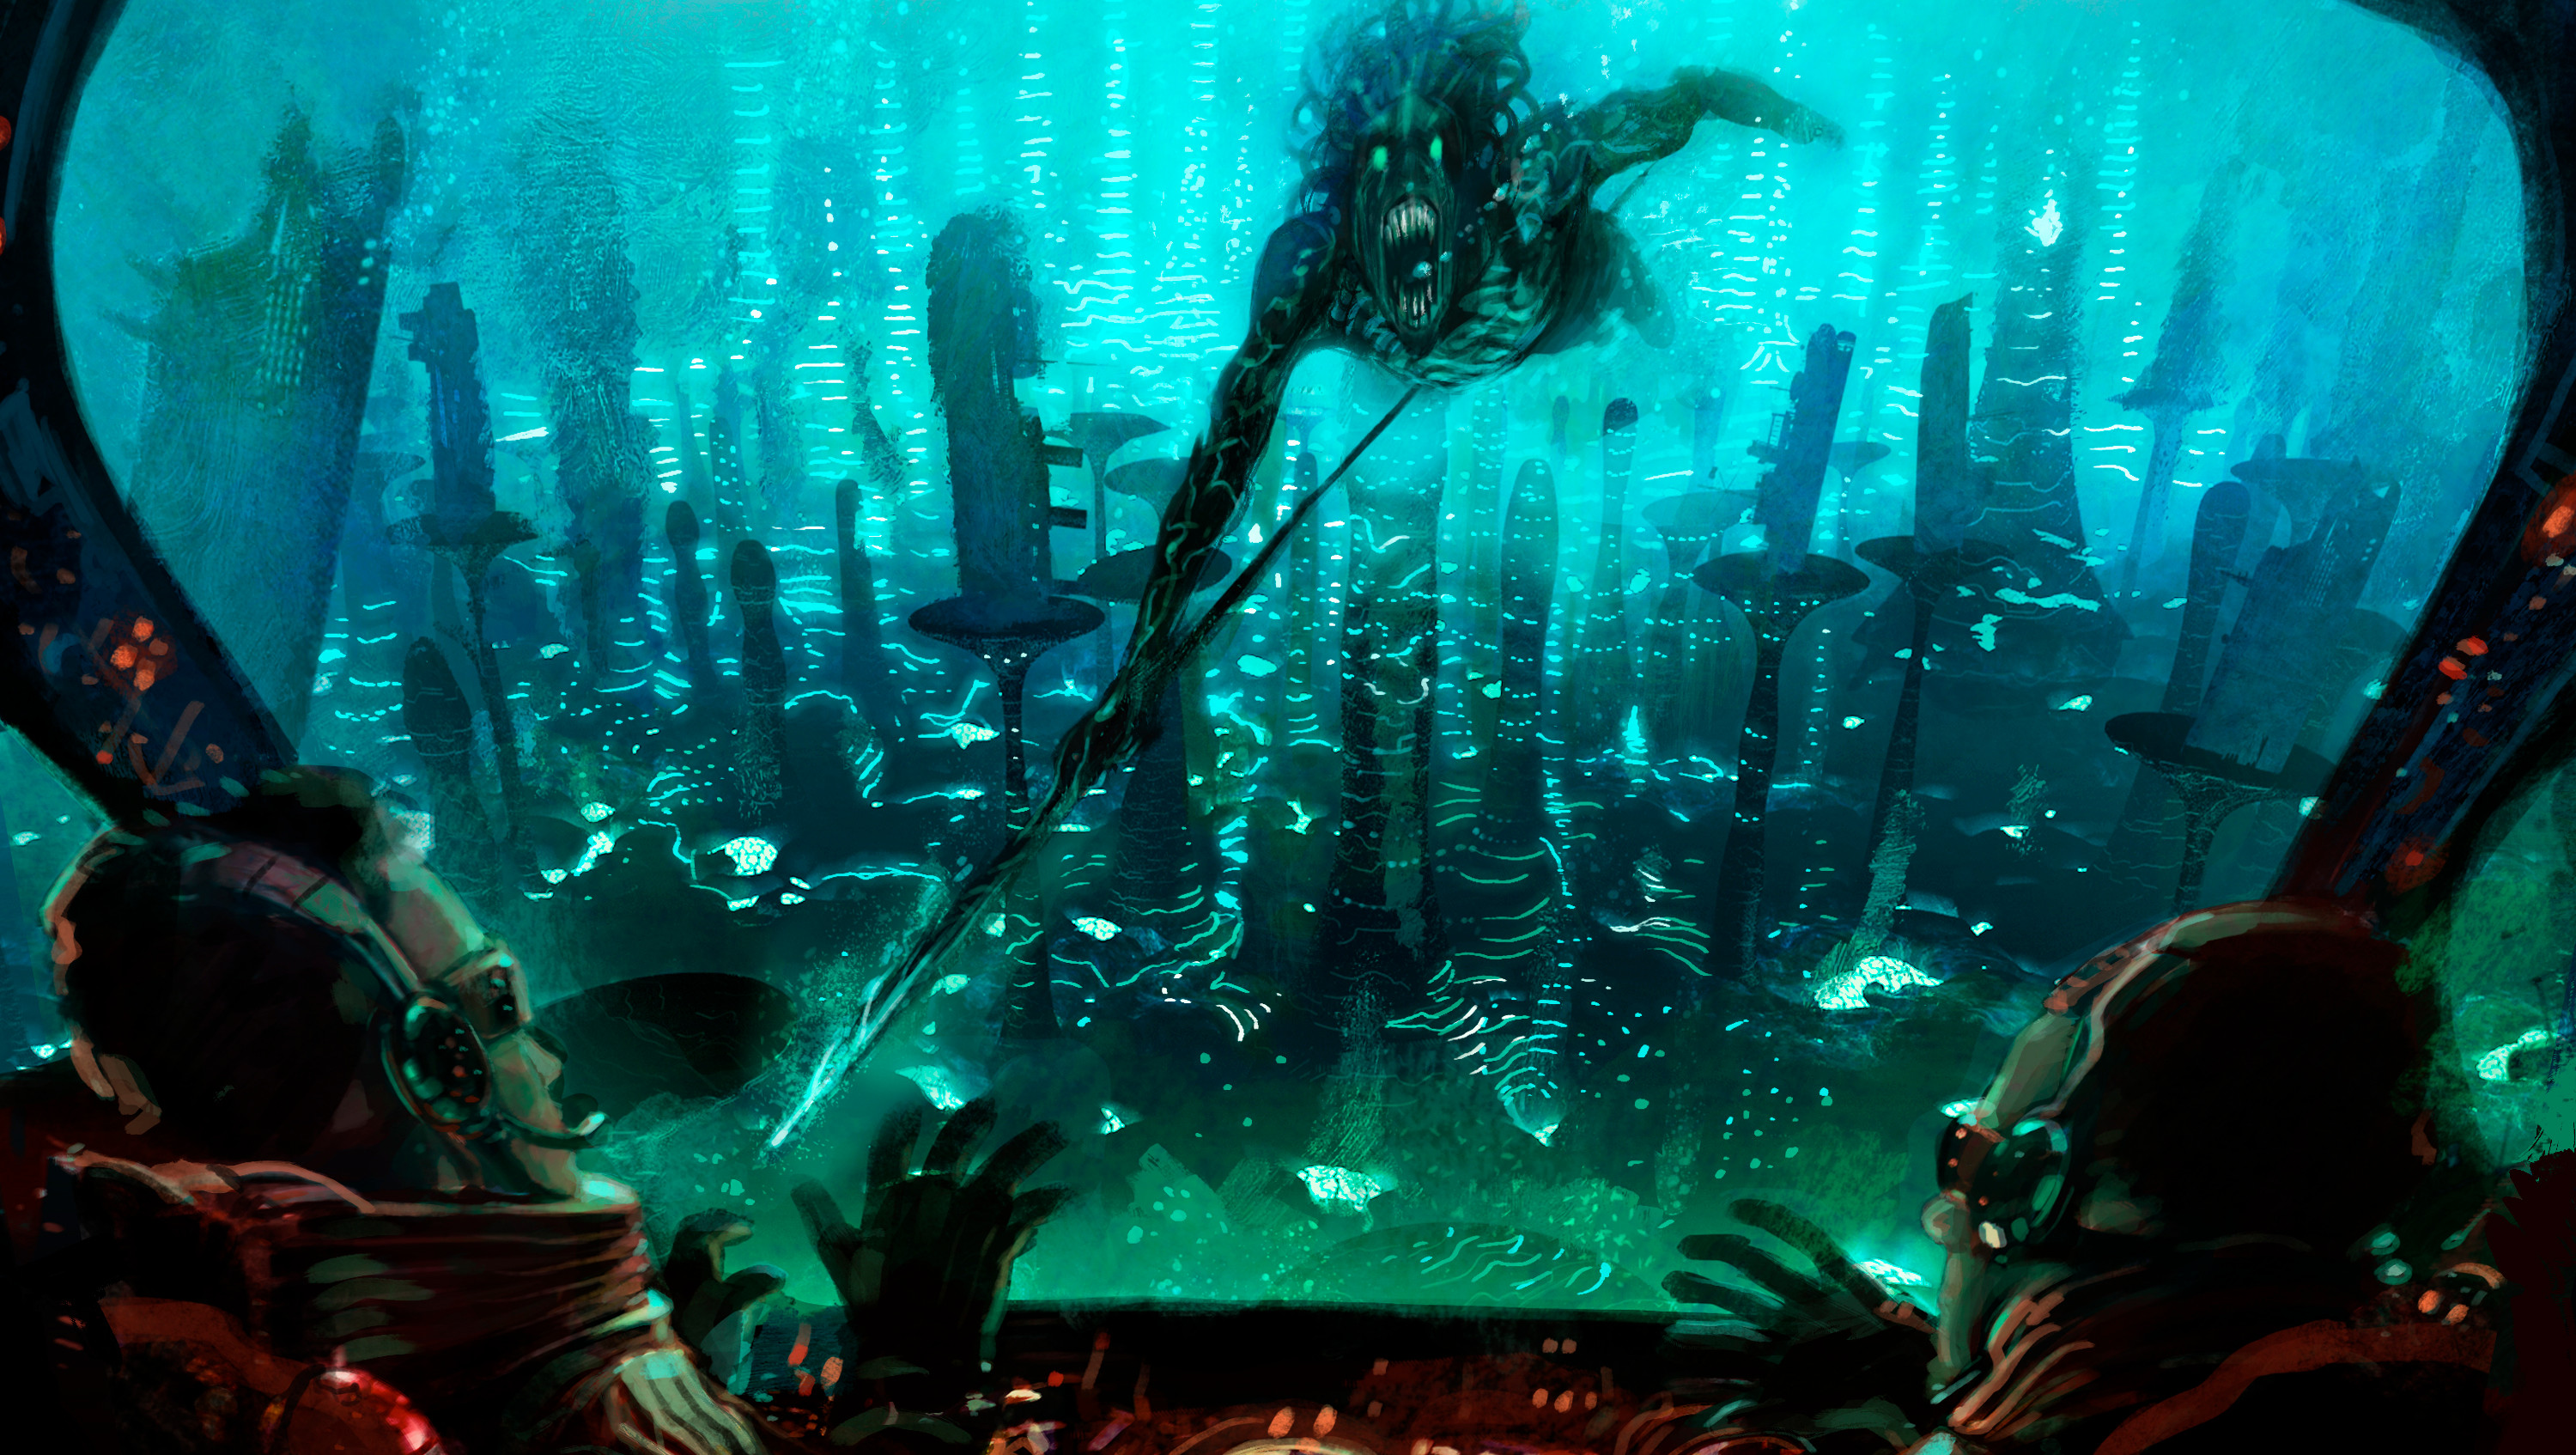 Kfr 04: Close encounter.